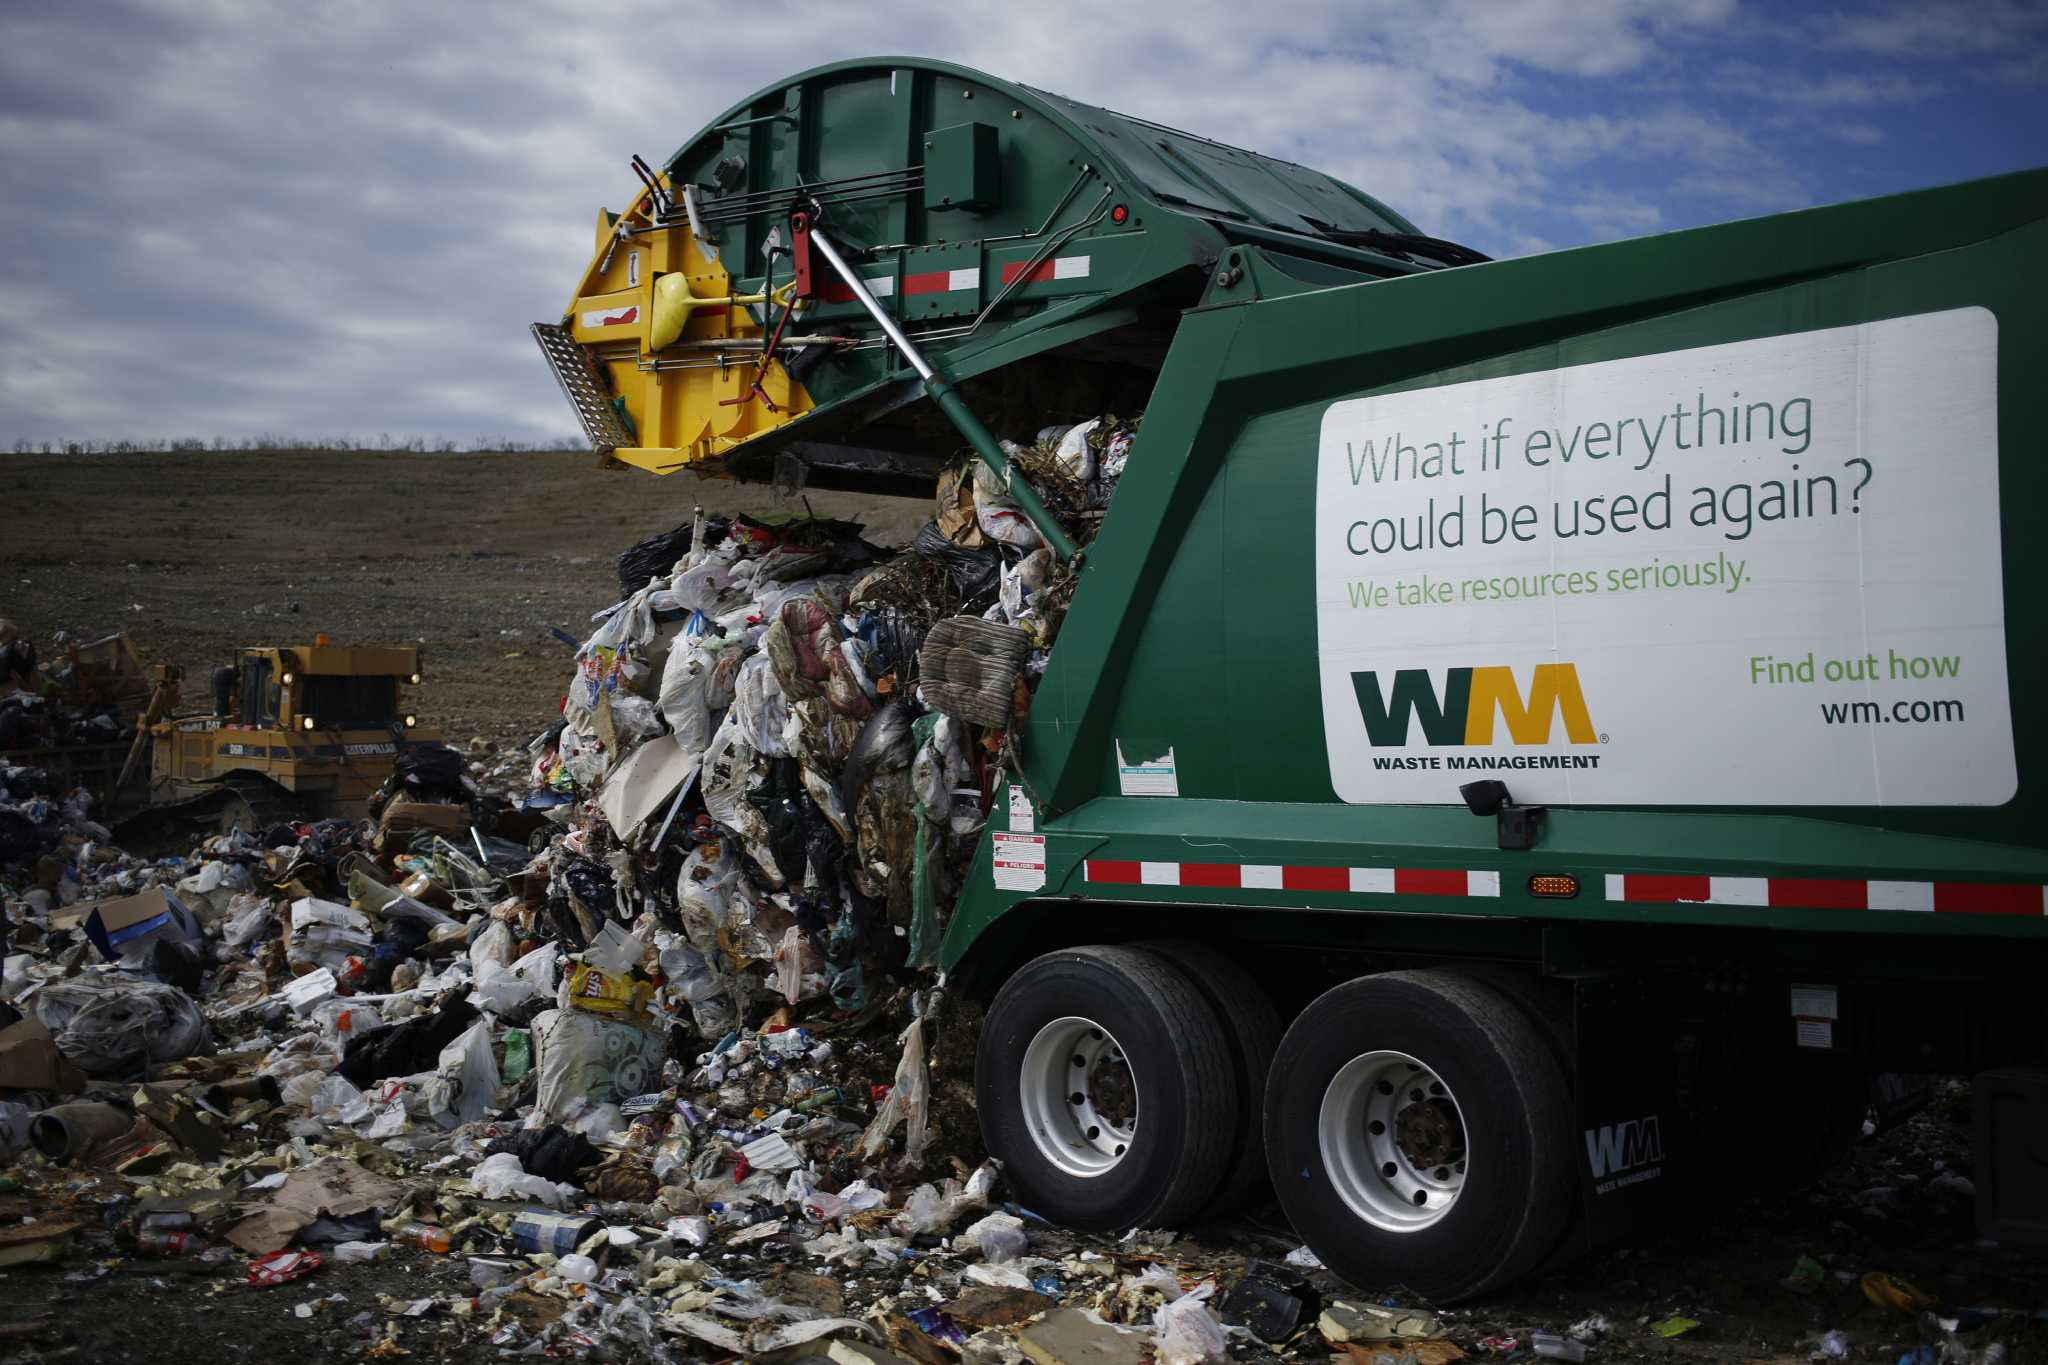 City of Beaumont announces holiday trash pickup schedule - SFGate